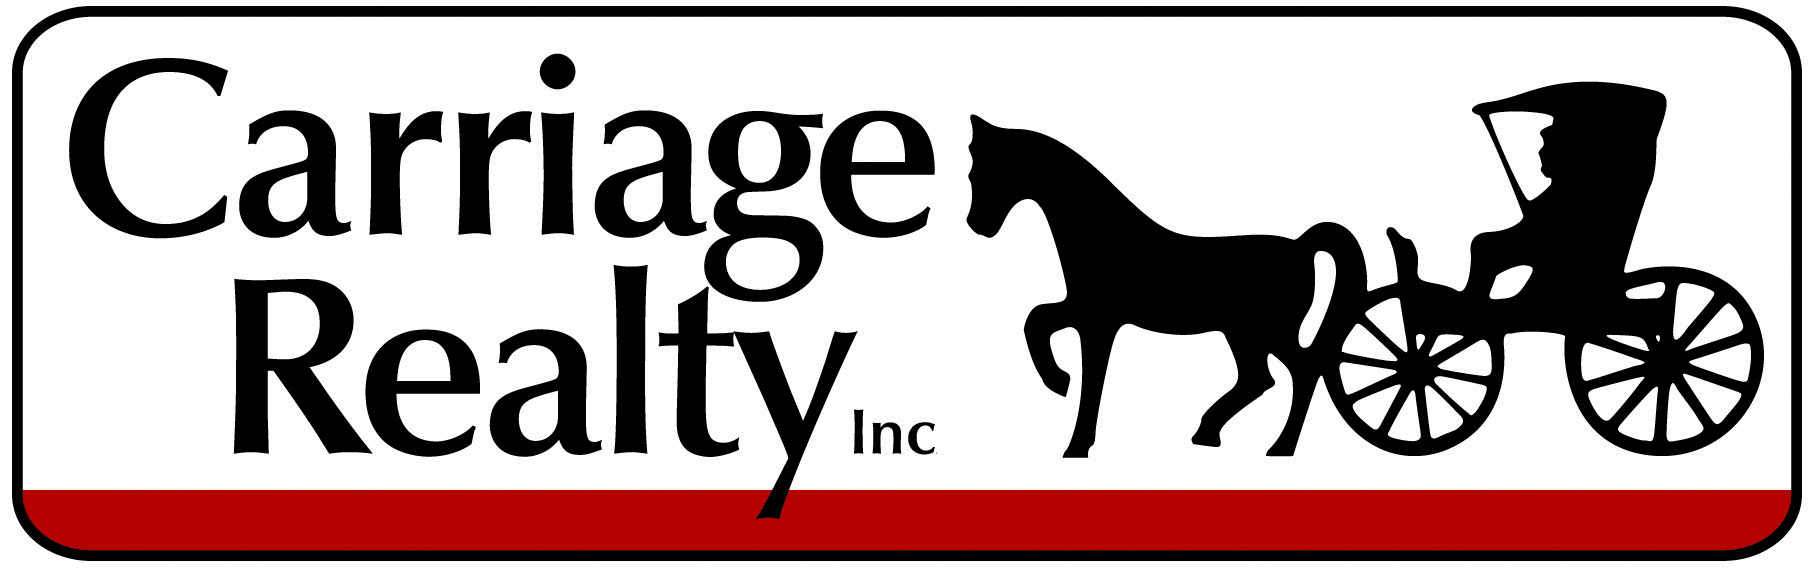 Carriage Realty